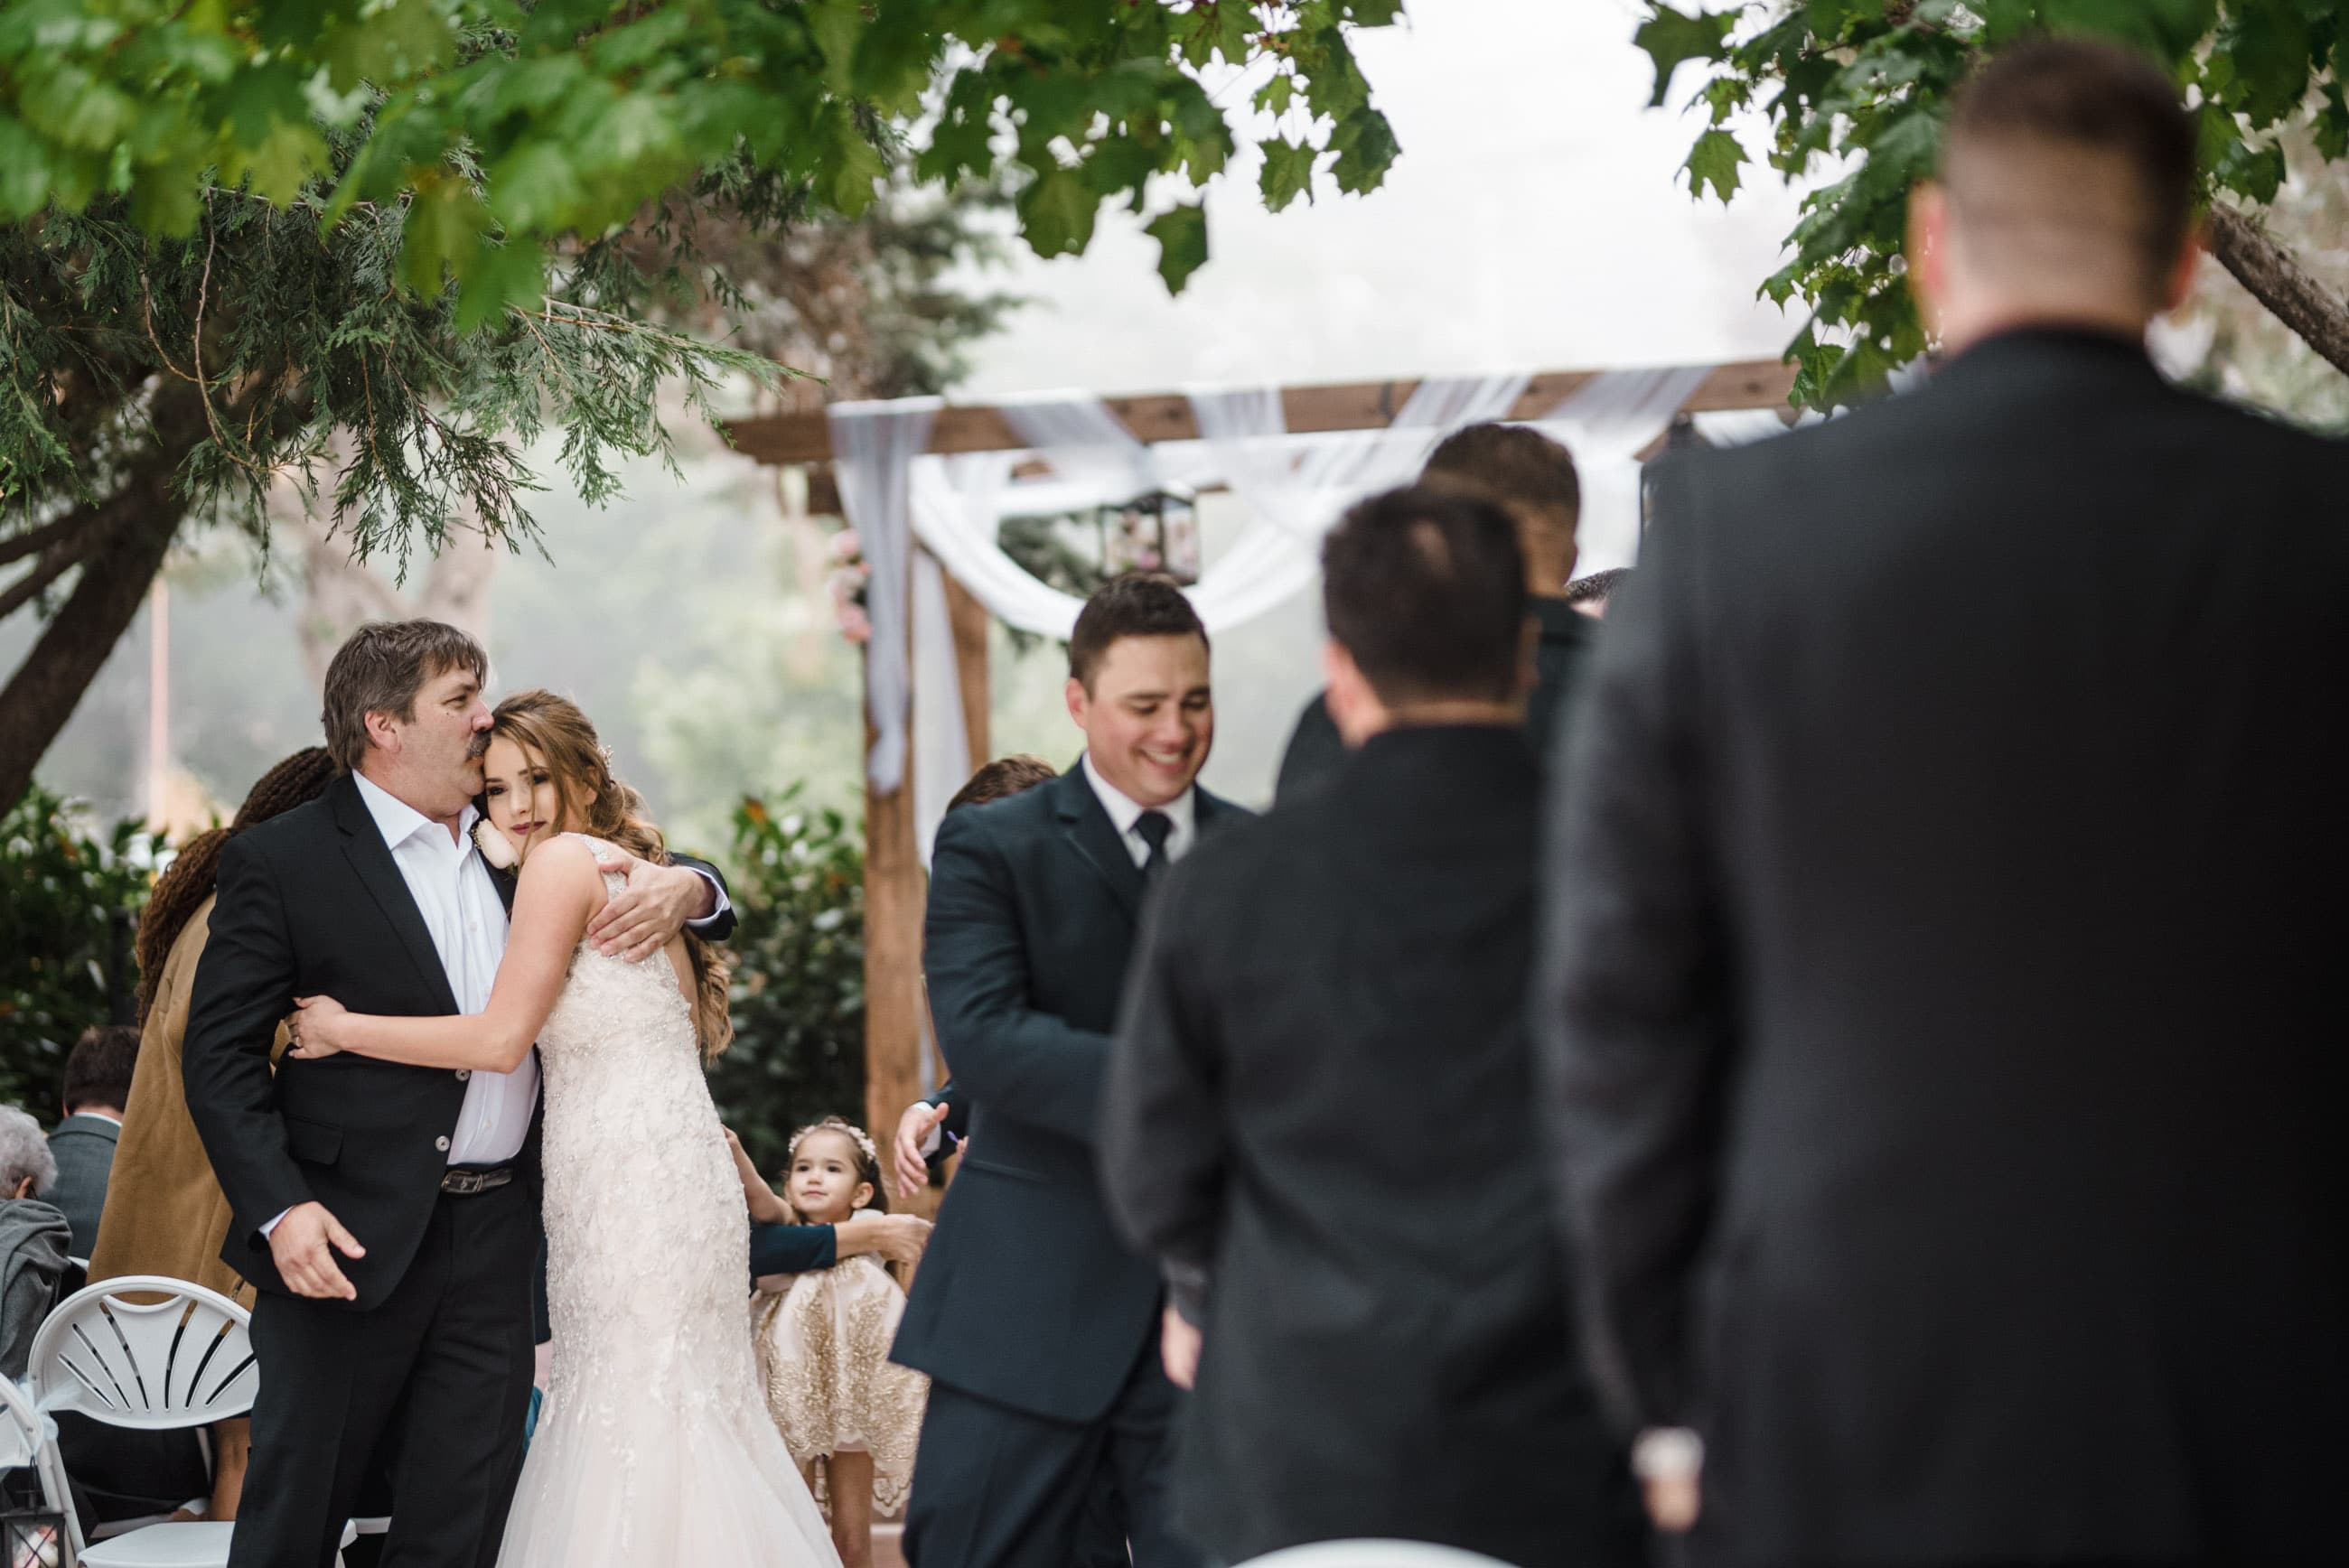 Audrey + Thomas Lake Arrowhead Wedding 86